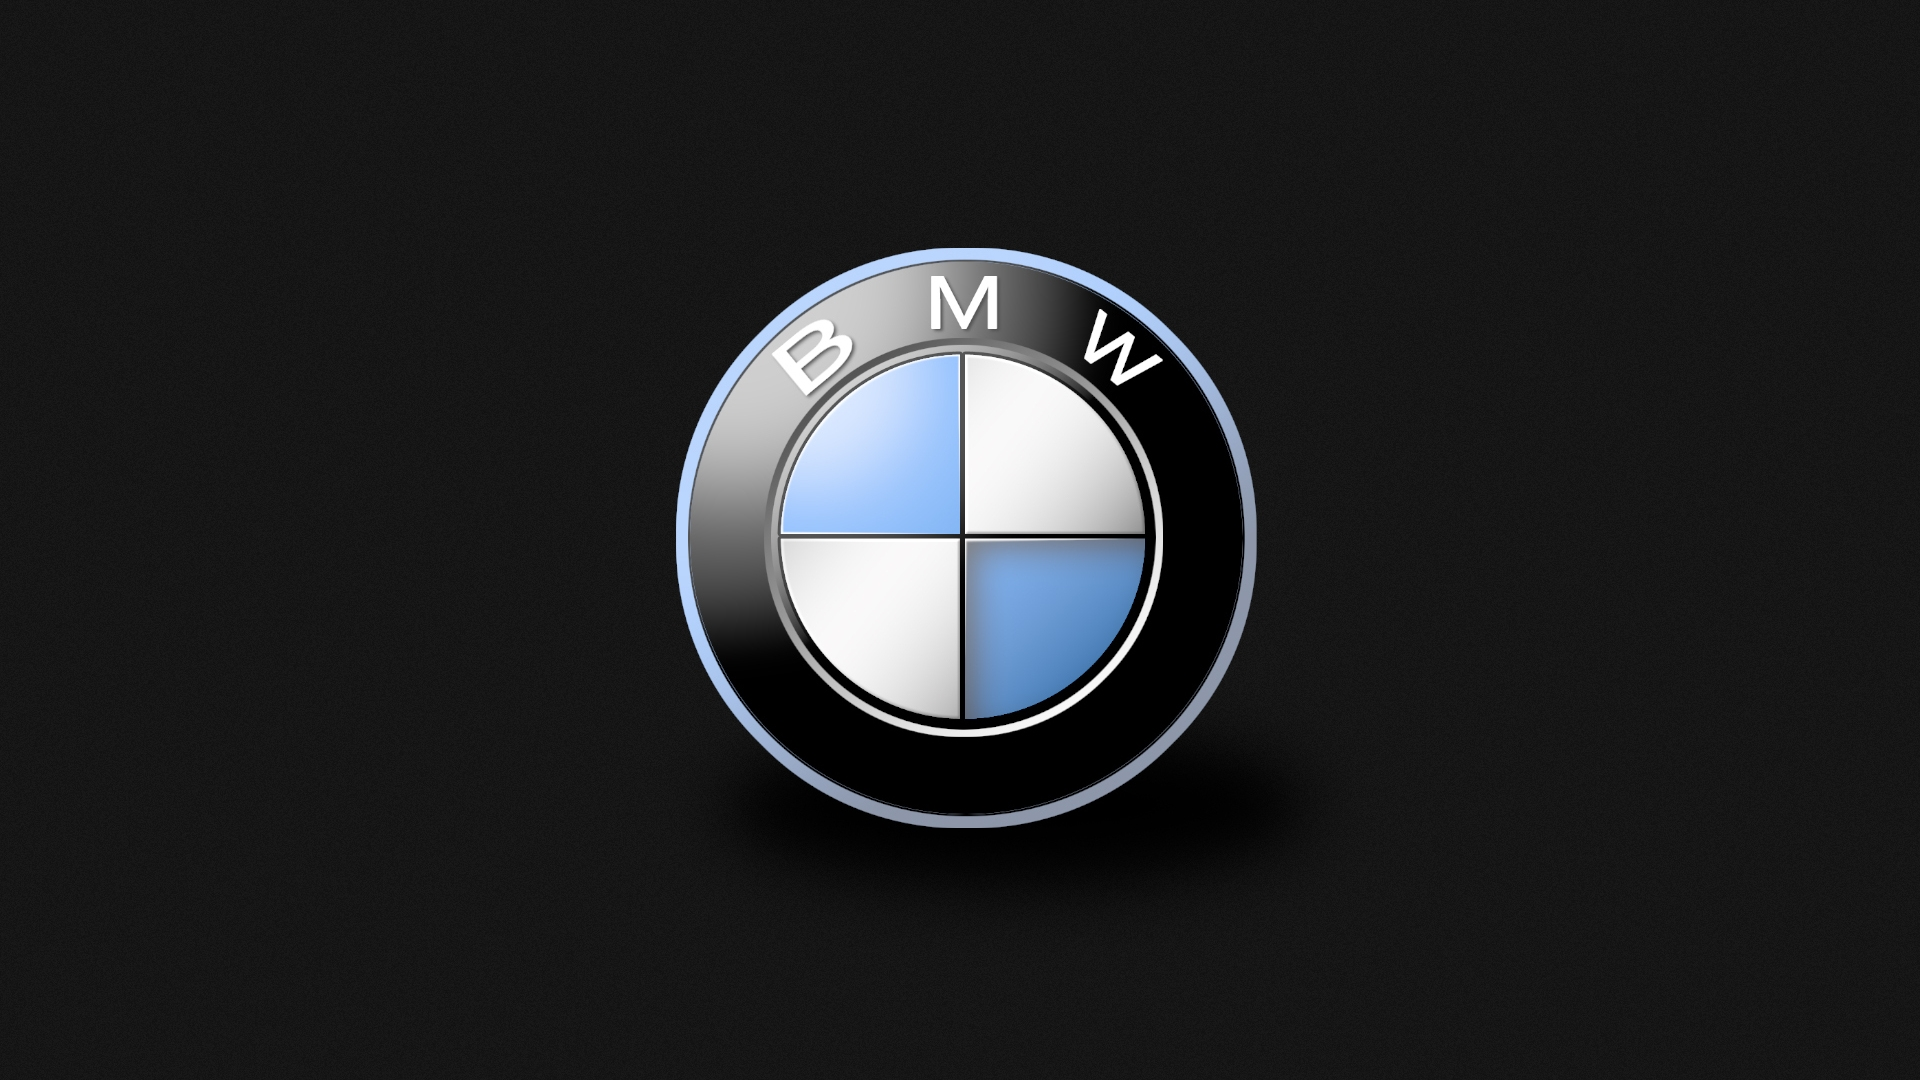 Bmw logo - High Definition Wallpapers - HD wallpapers